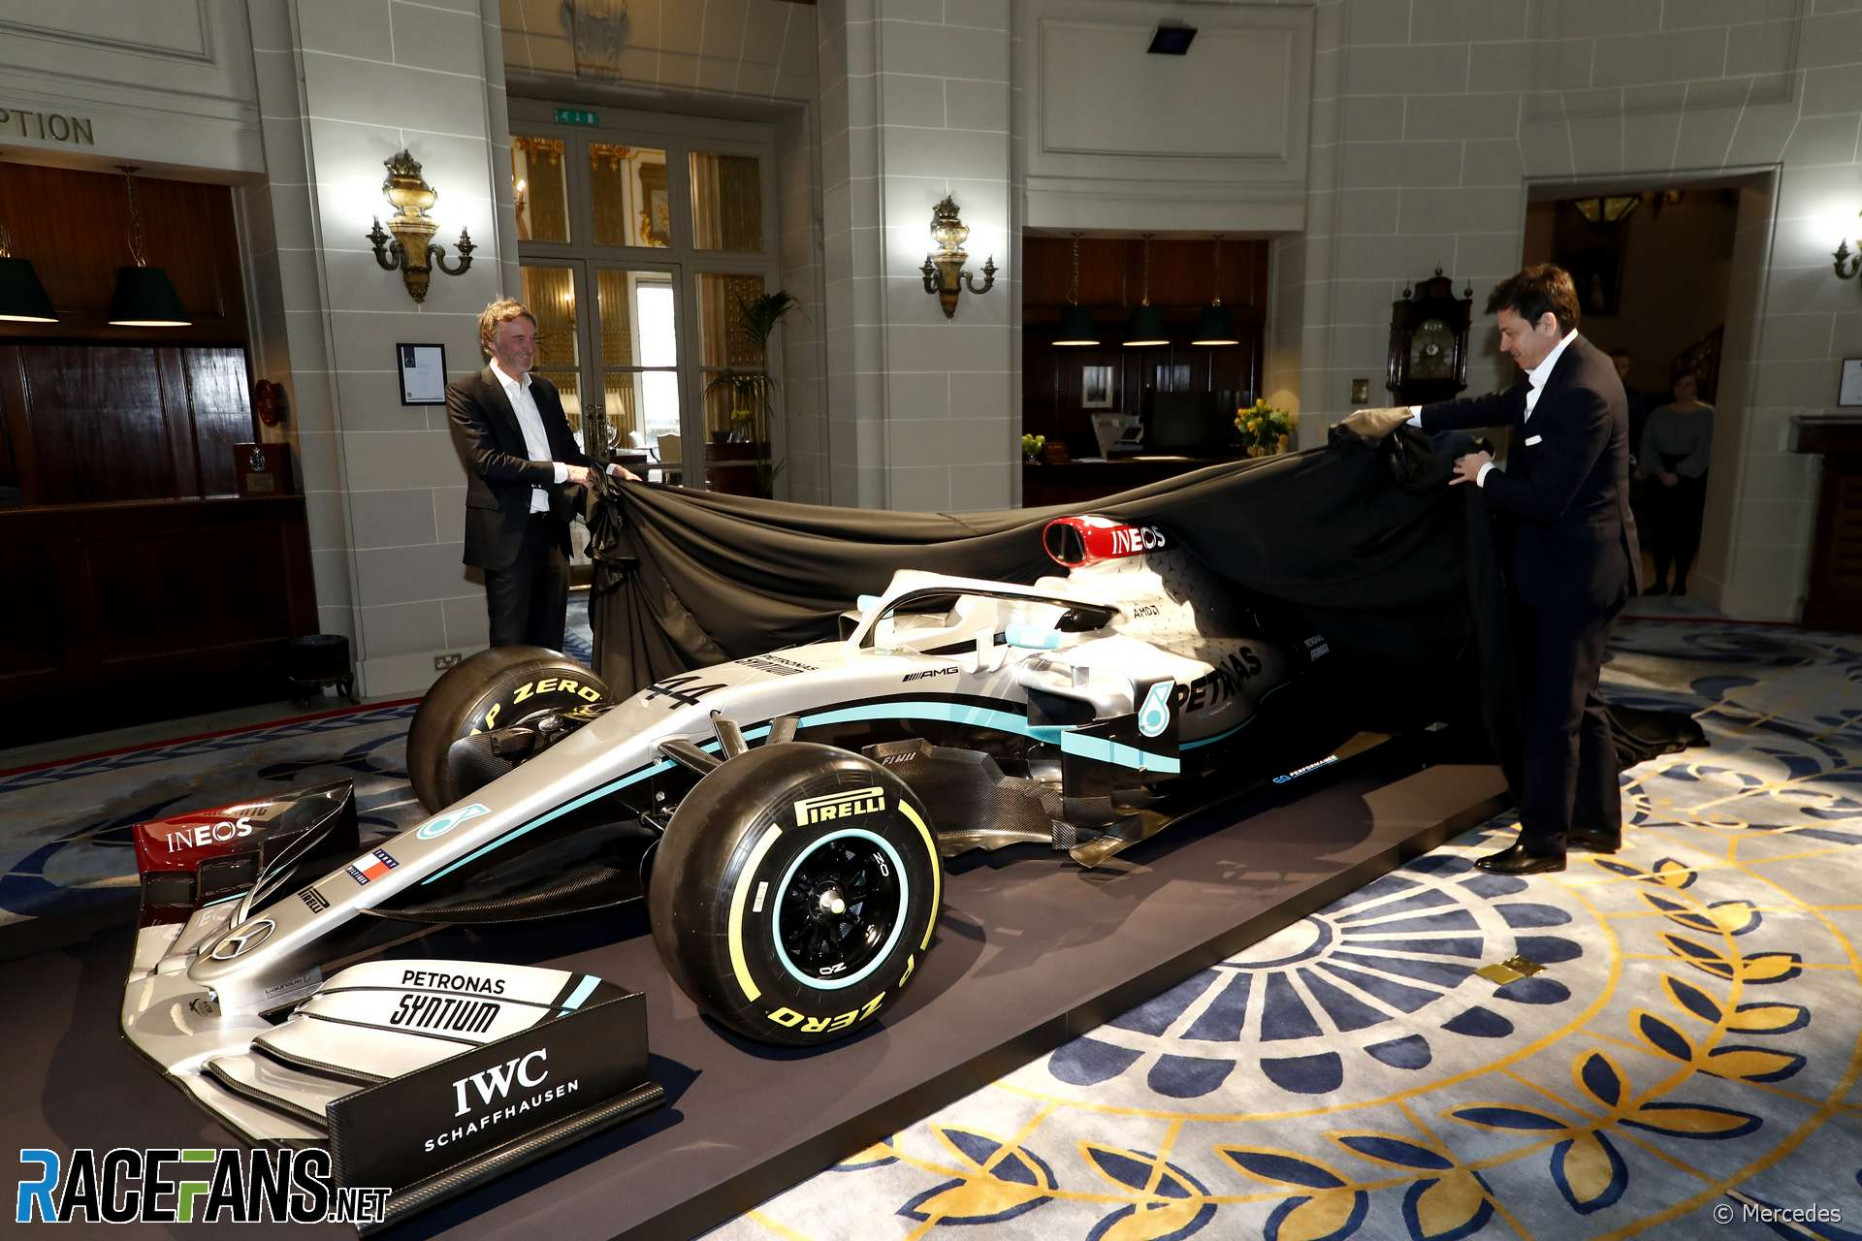 First pictures: Mercedes presents its 8 livery in London · RaceFans - mercedes f1 2020 livery